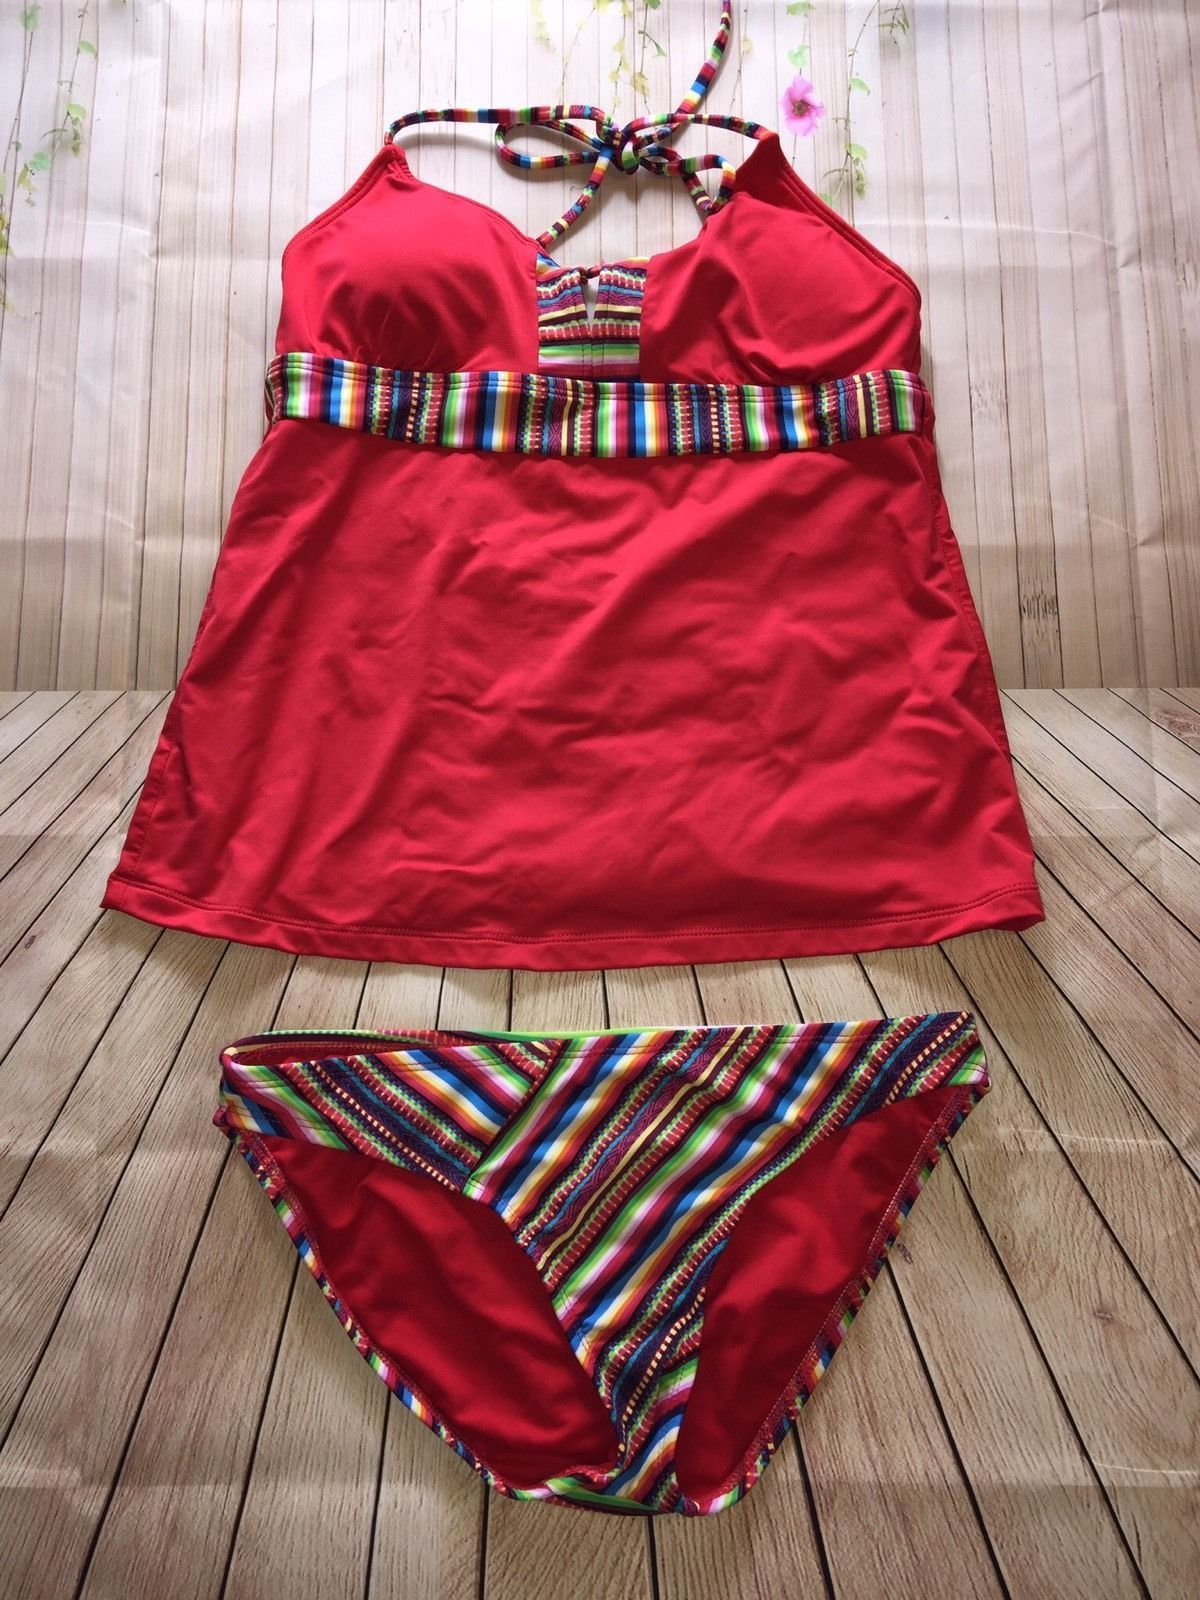 aee3250b454 Women's Mossimo 2 Piece Red Multicolored Striped Tankini Set. Adorable  swimwear. Size: Small. | eBay!